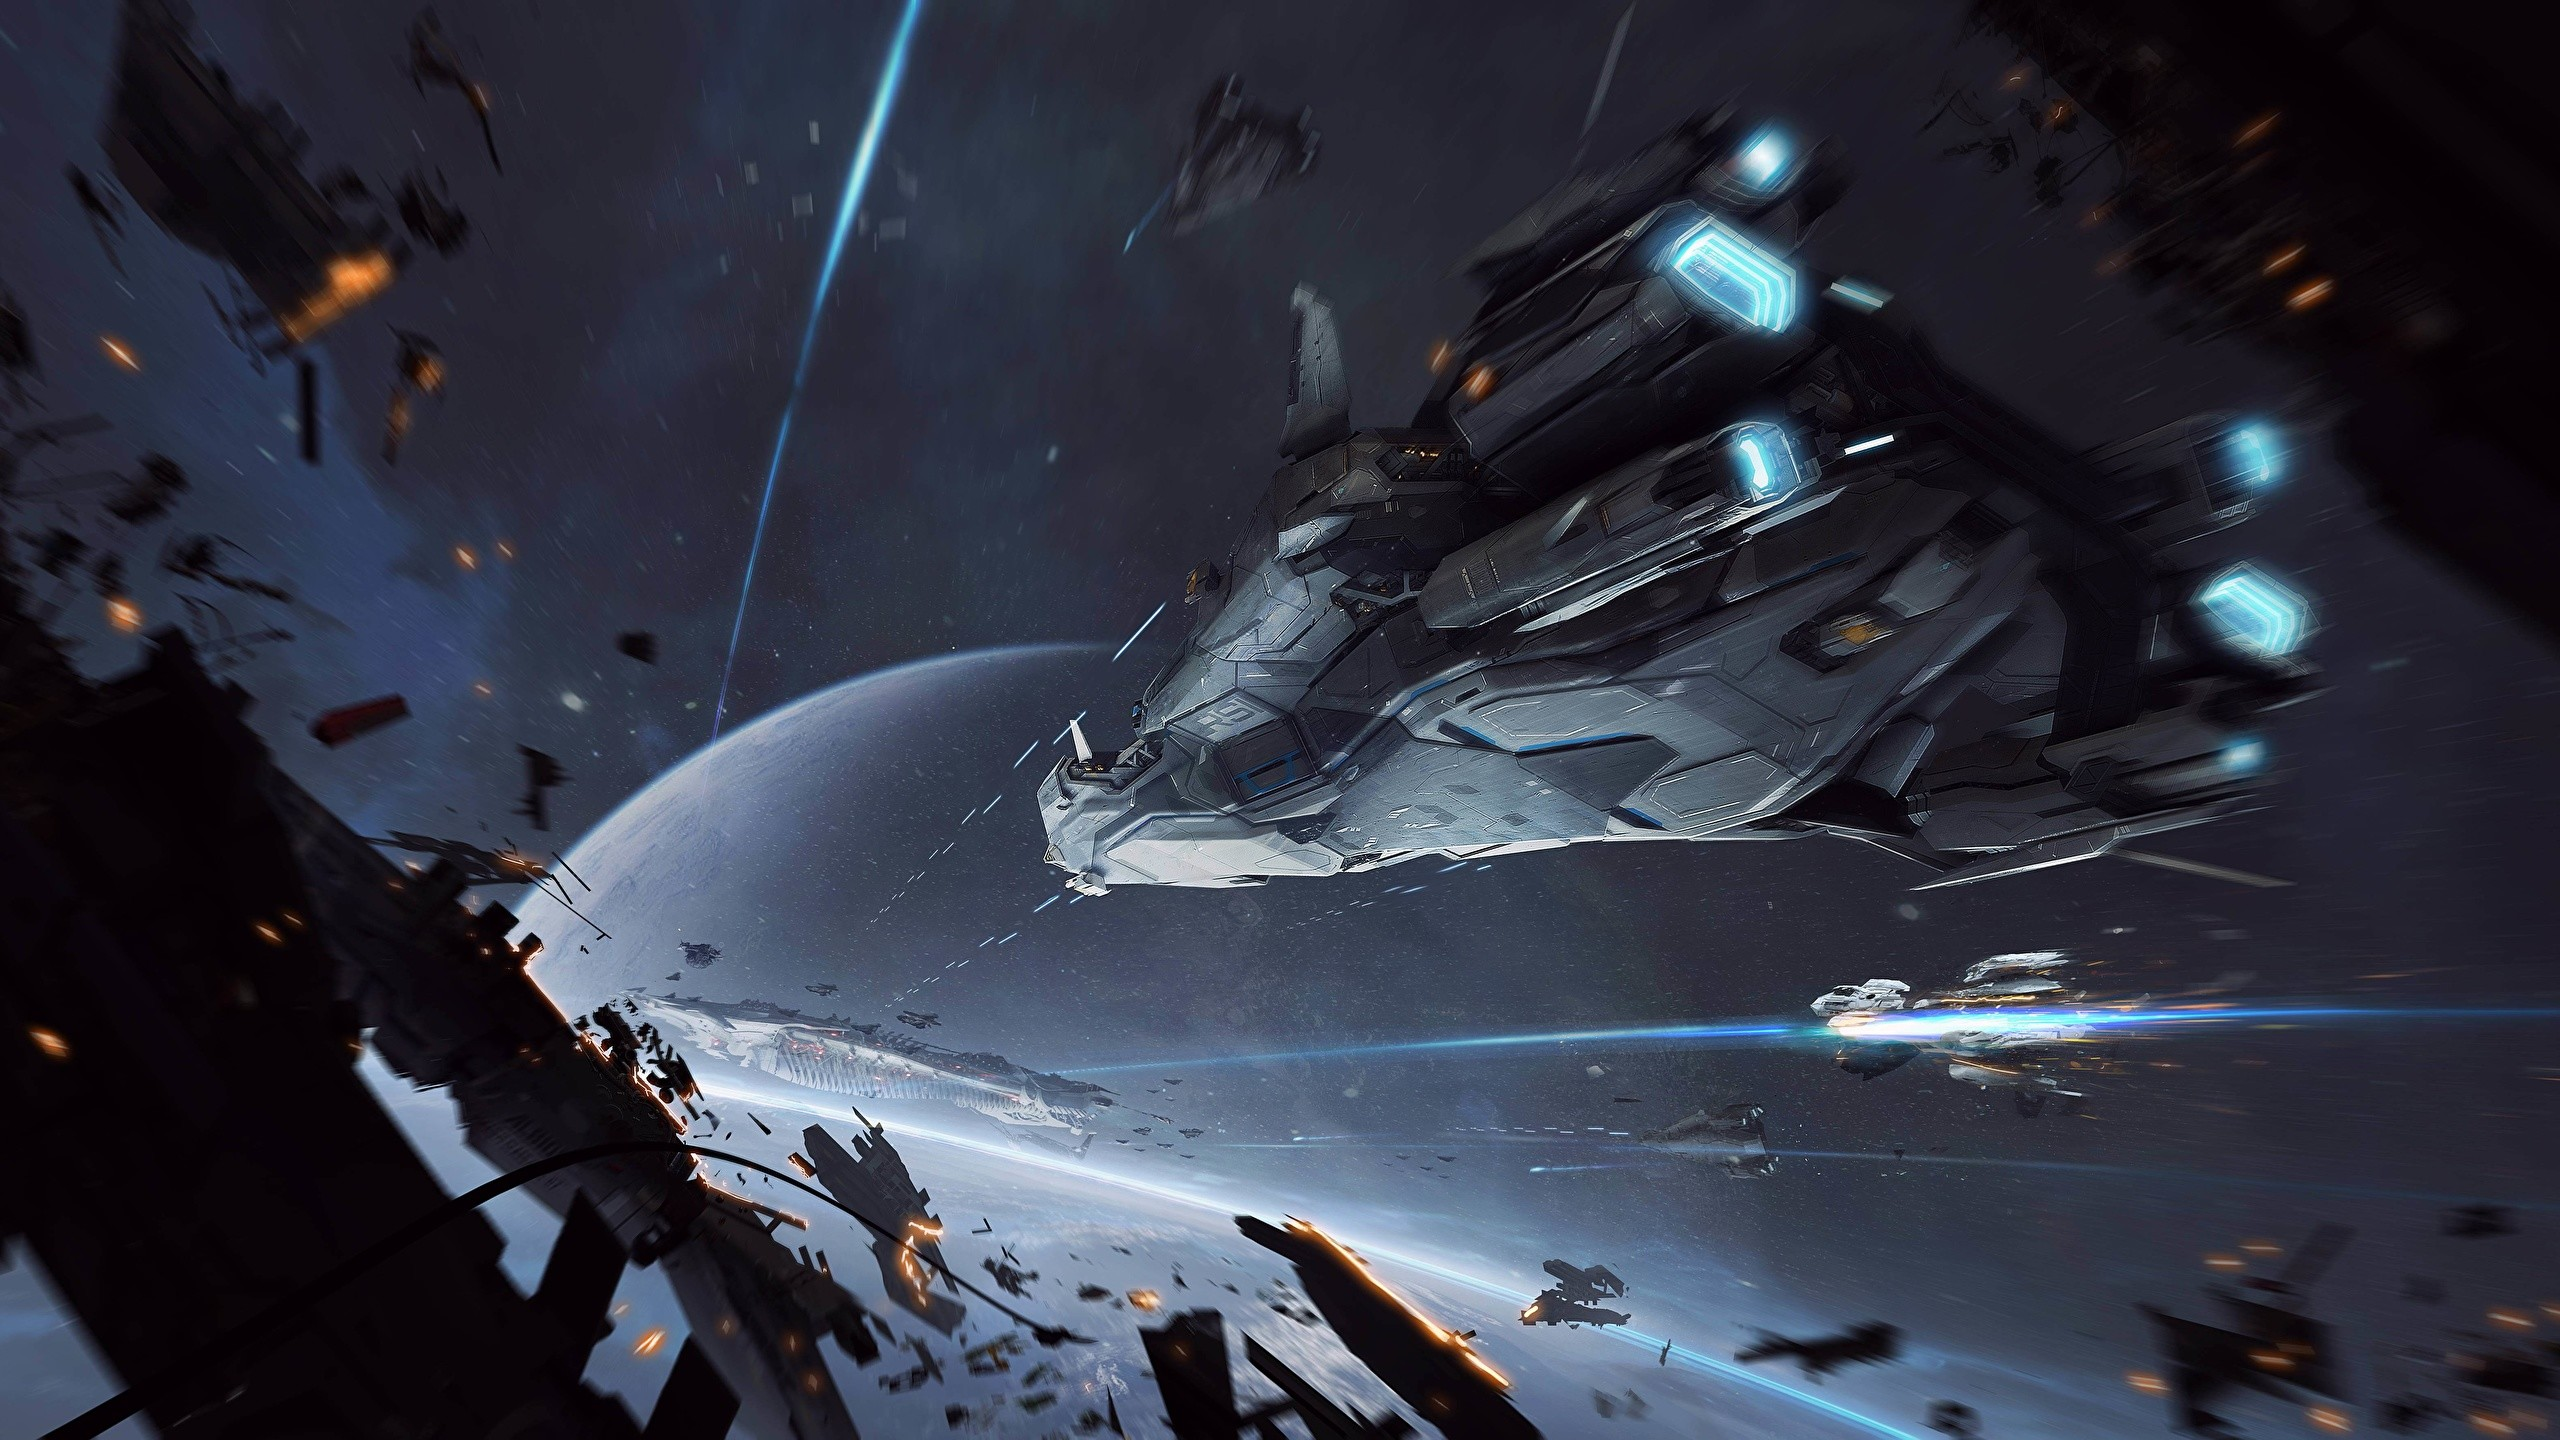 2560x1440 Photo Star Citizen Space Fantasy Games Ships Battles